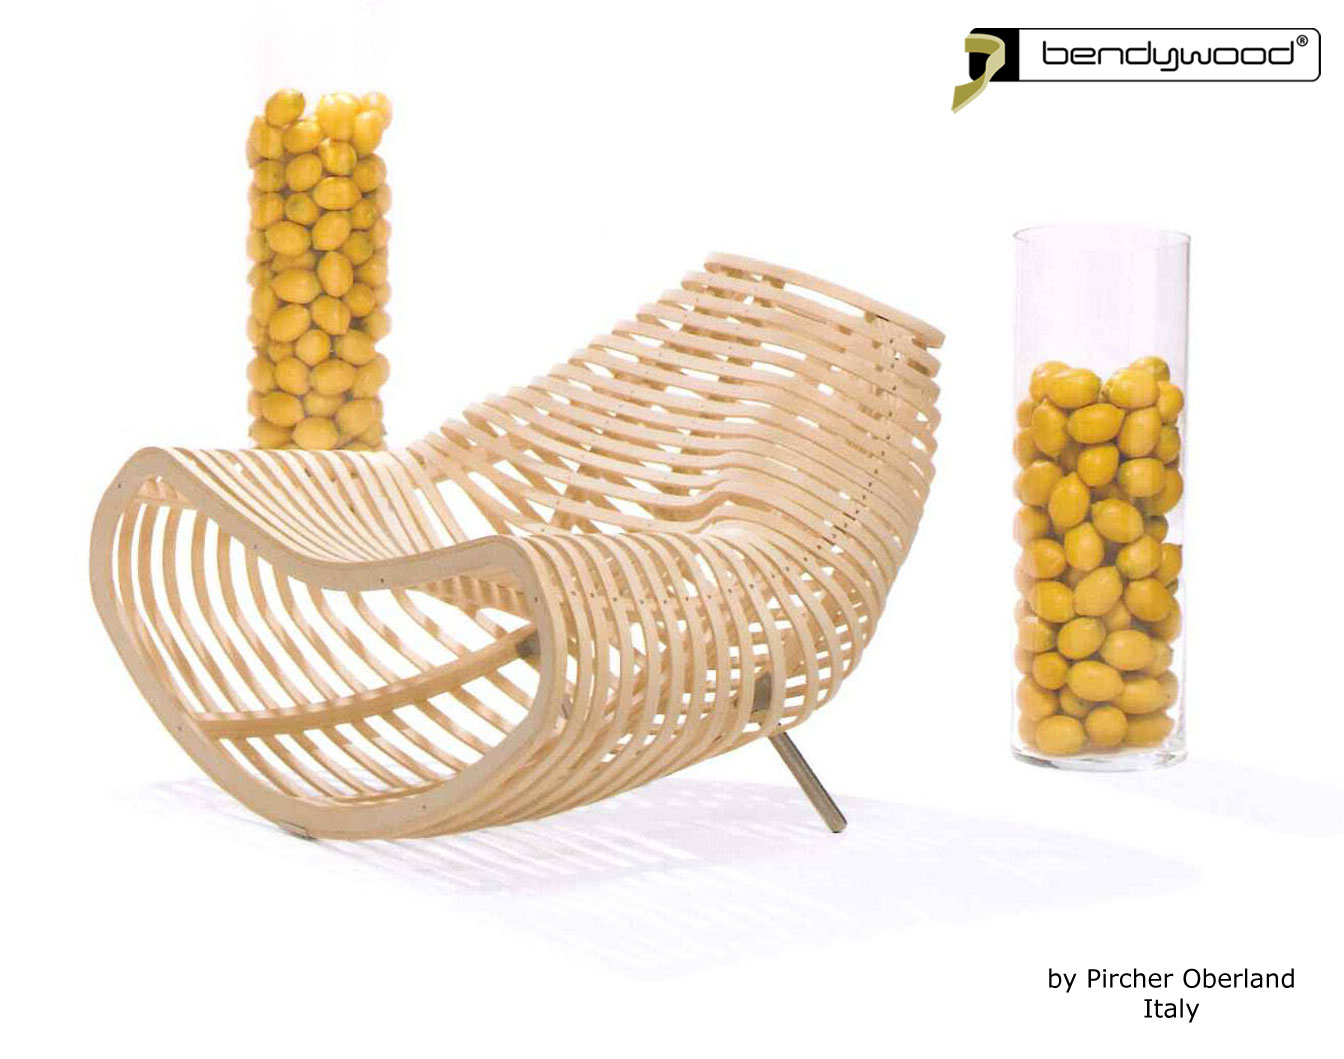 Bending wood Bendywood® - seating furniture